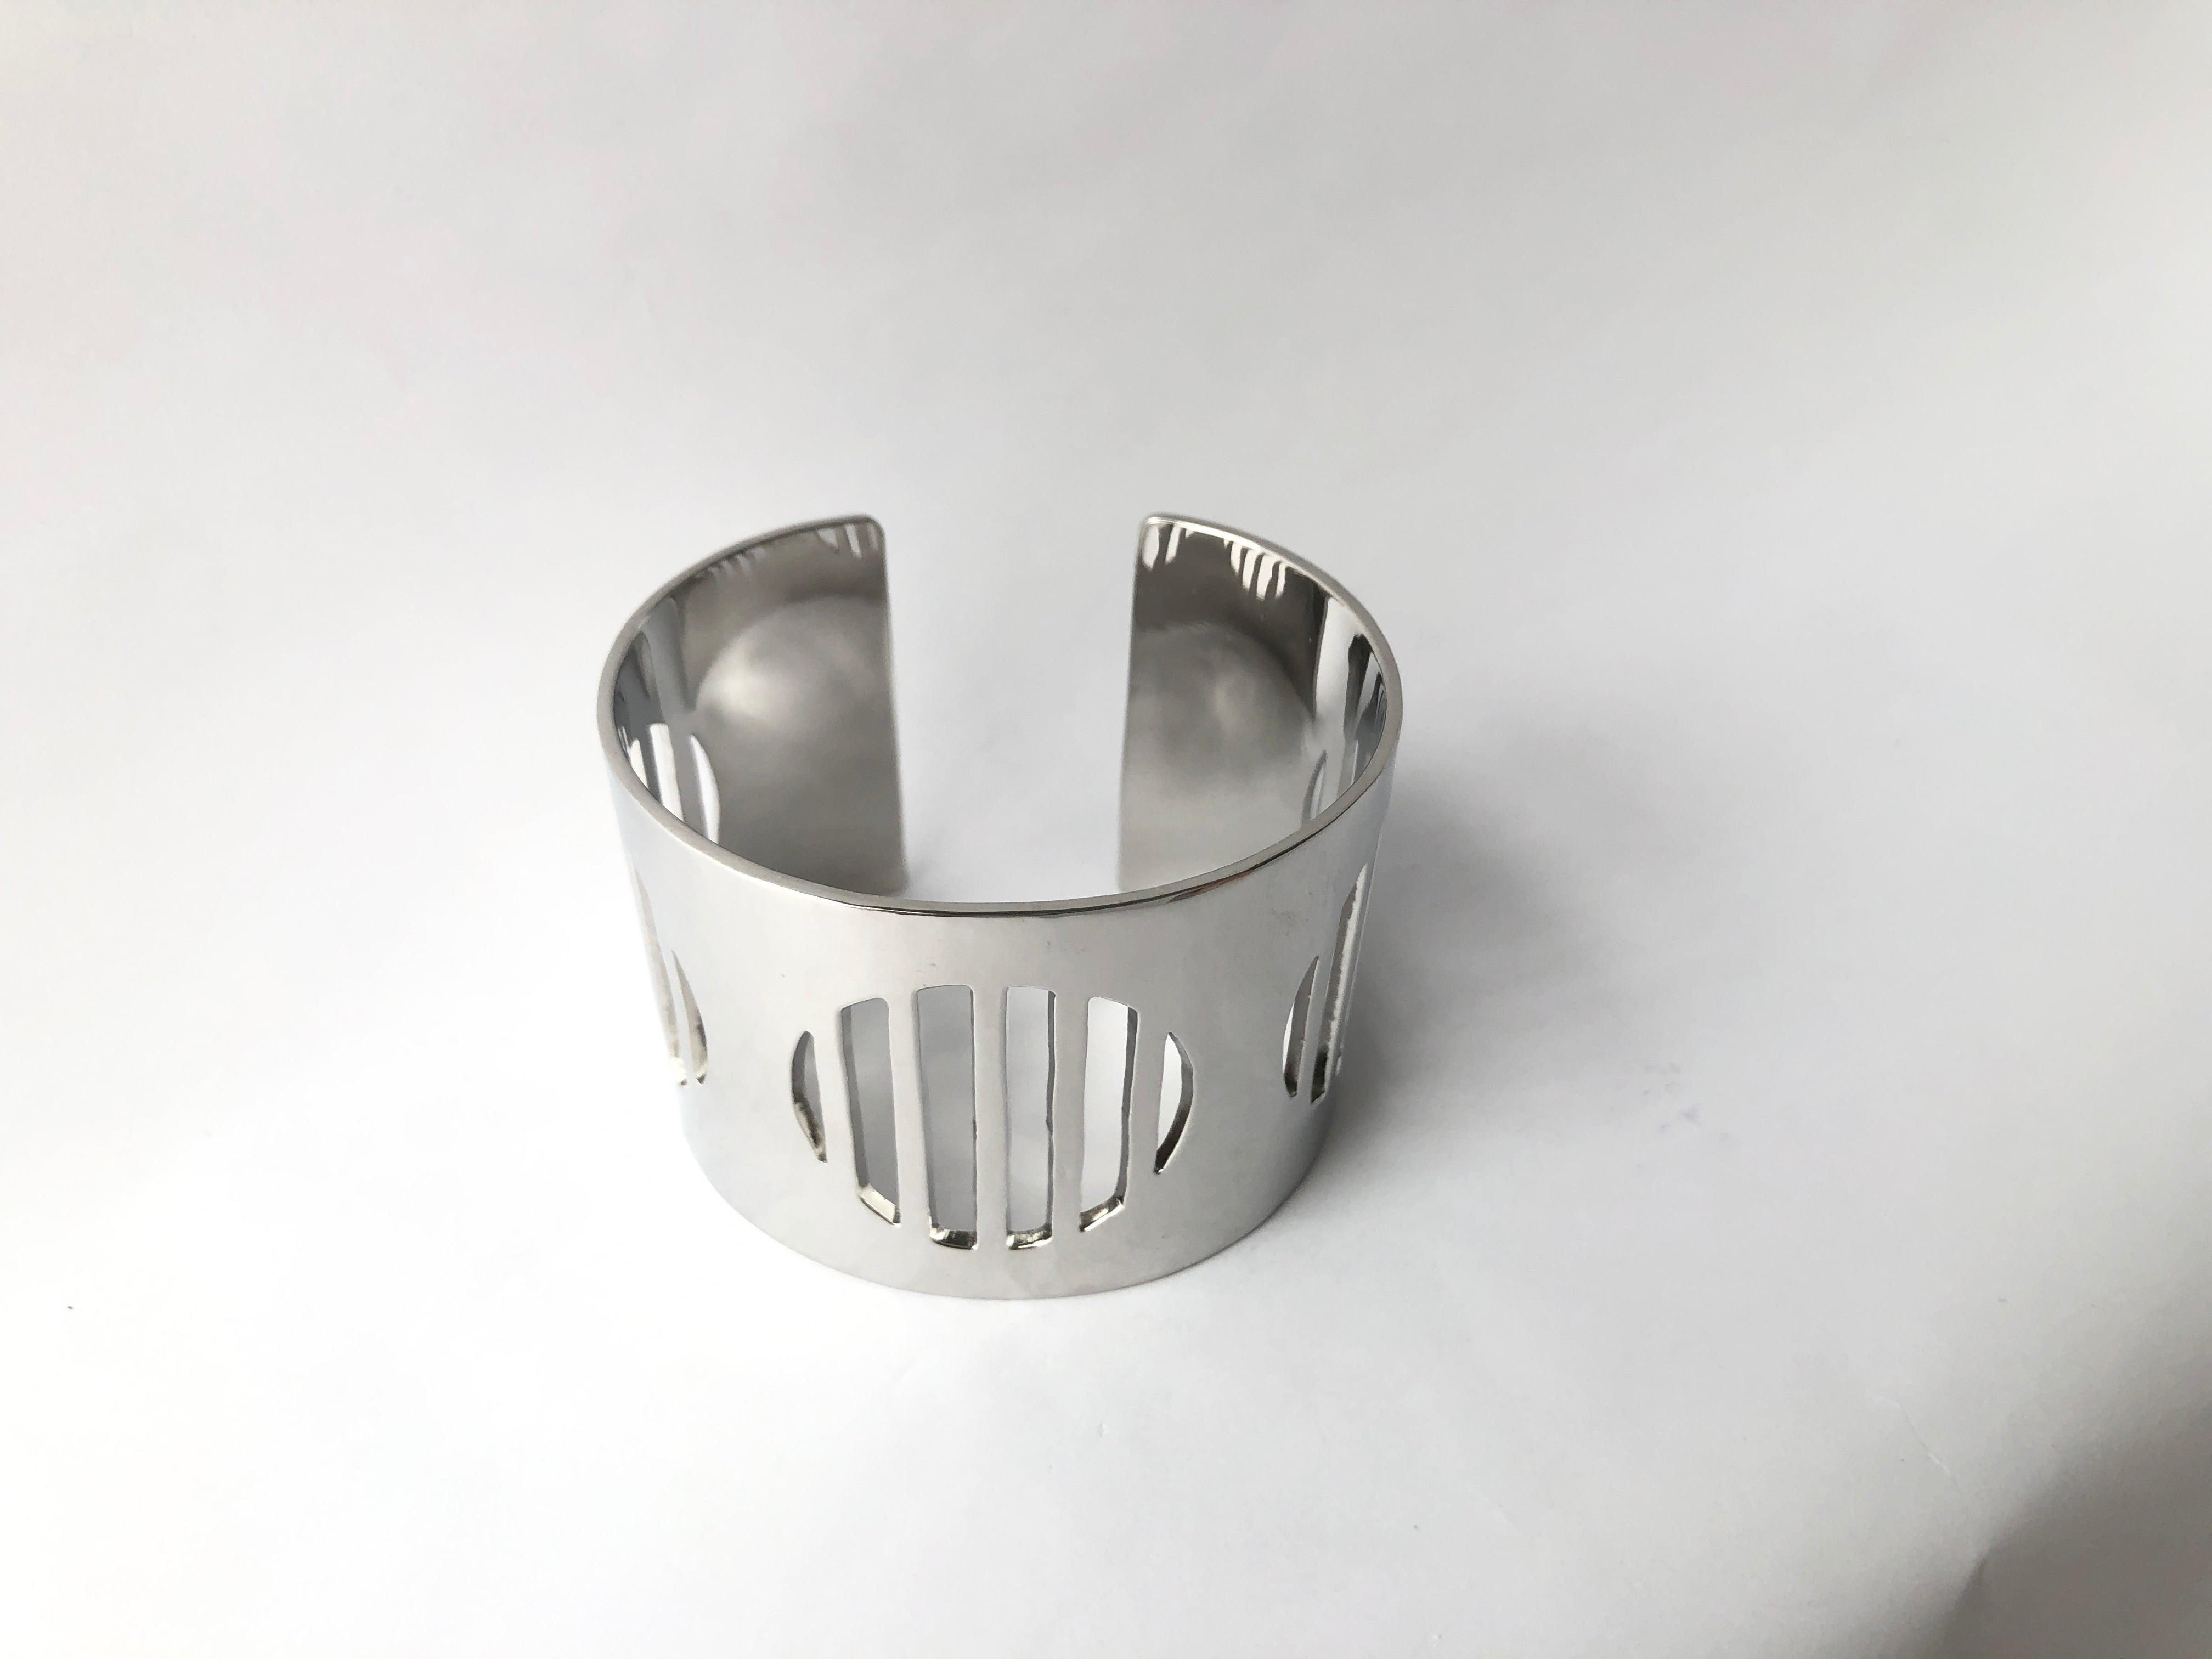 stylish silver sustainable jewellery recycled rings cuffs bracelets ethical accessories women